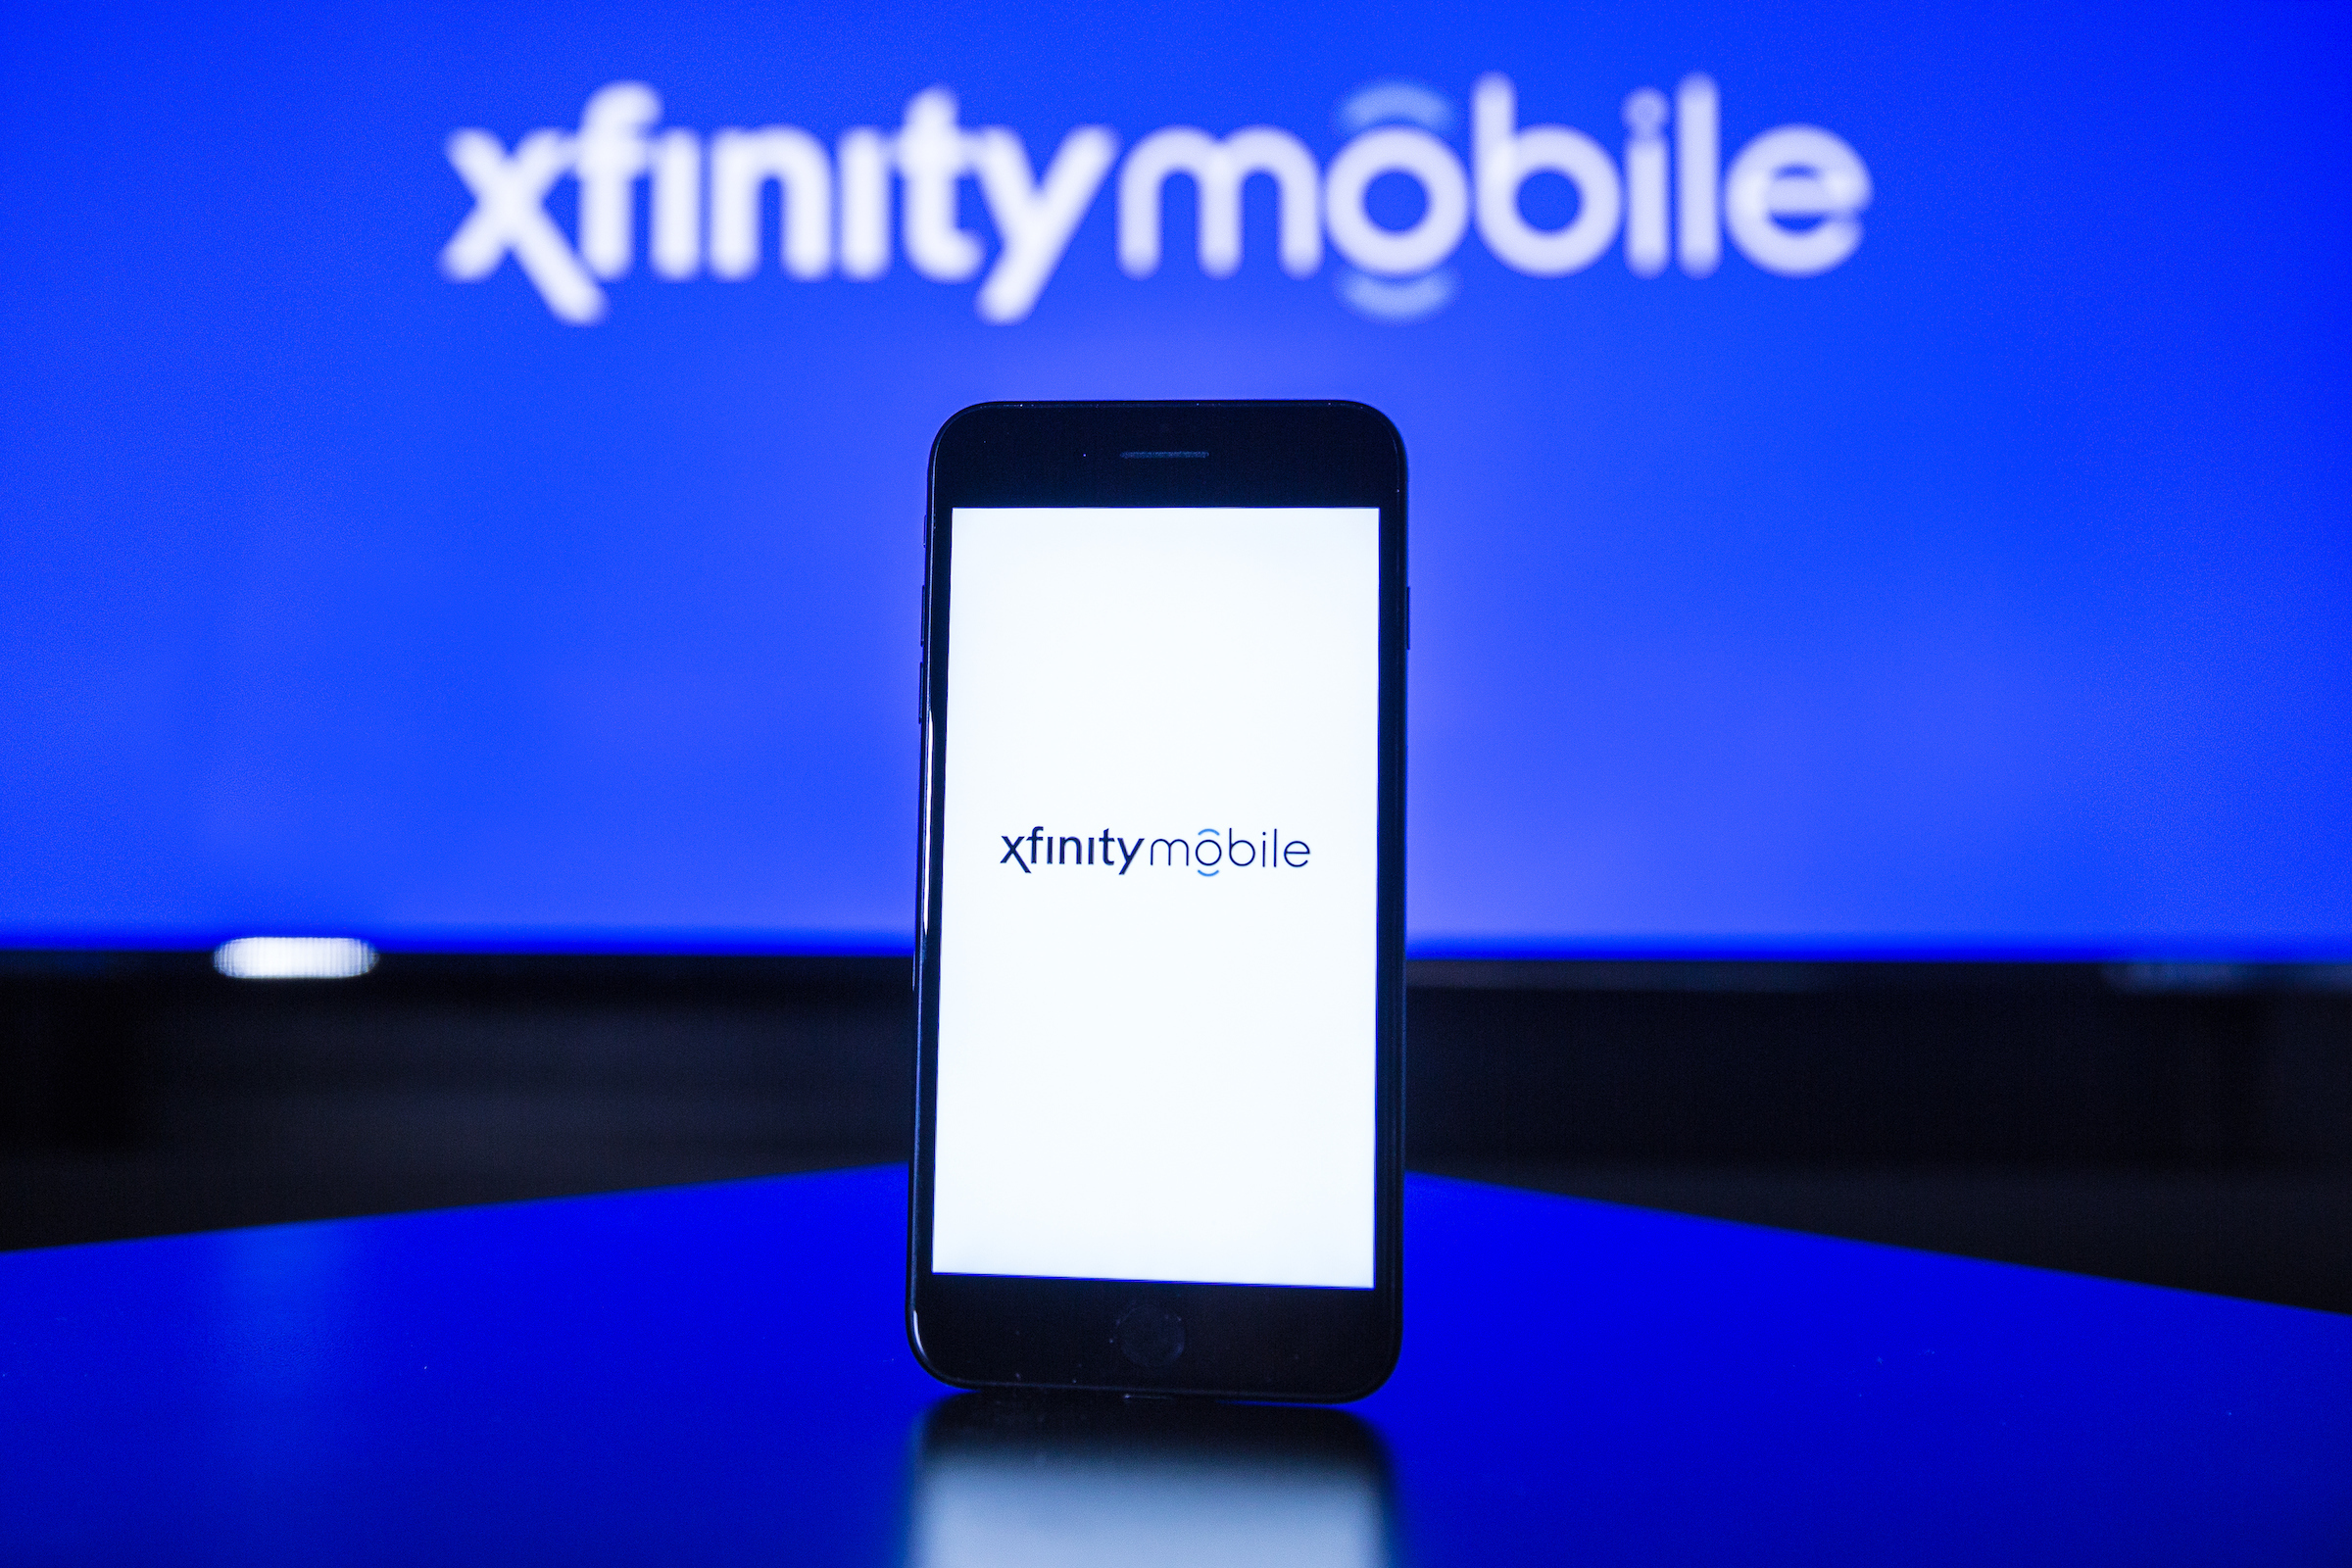 Comcast Internet Packages >> xfinity mobile Archives - Android Police - Android news, reviews, apps, games, phones, tablets